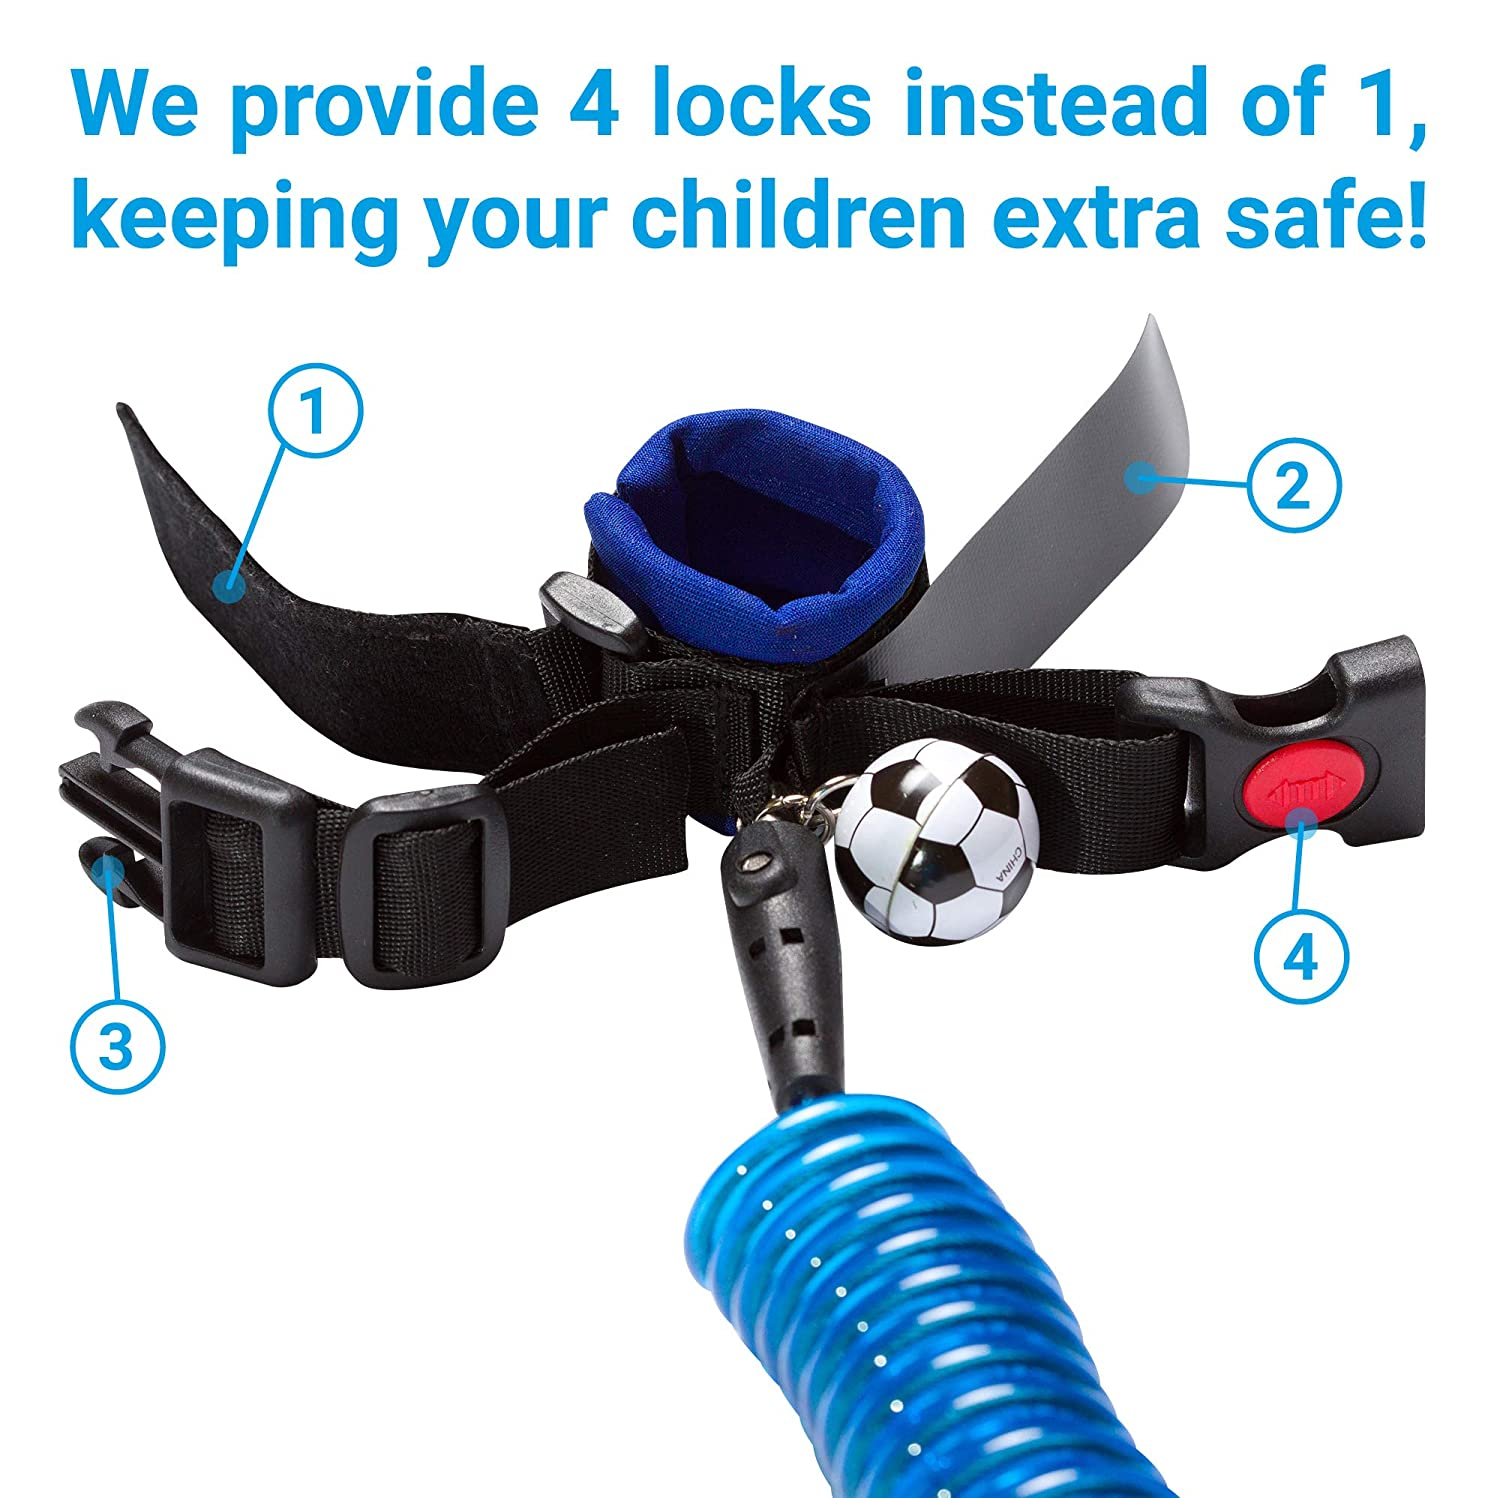 Wrist Leash for Kids Child Safety Wristband Toddler Harness Leashes Blue Baby Anti Lost Wrist Link